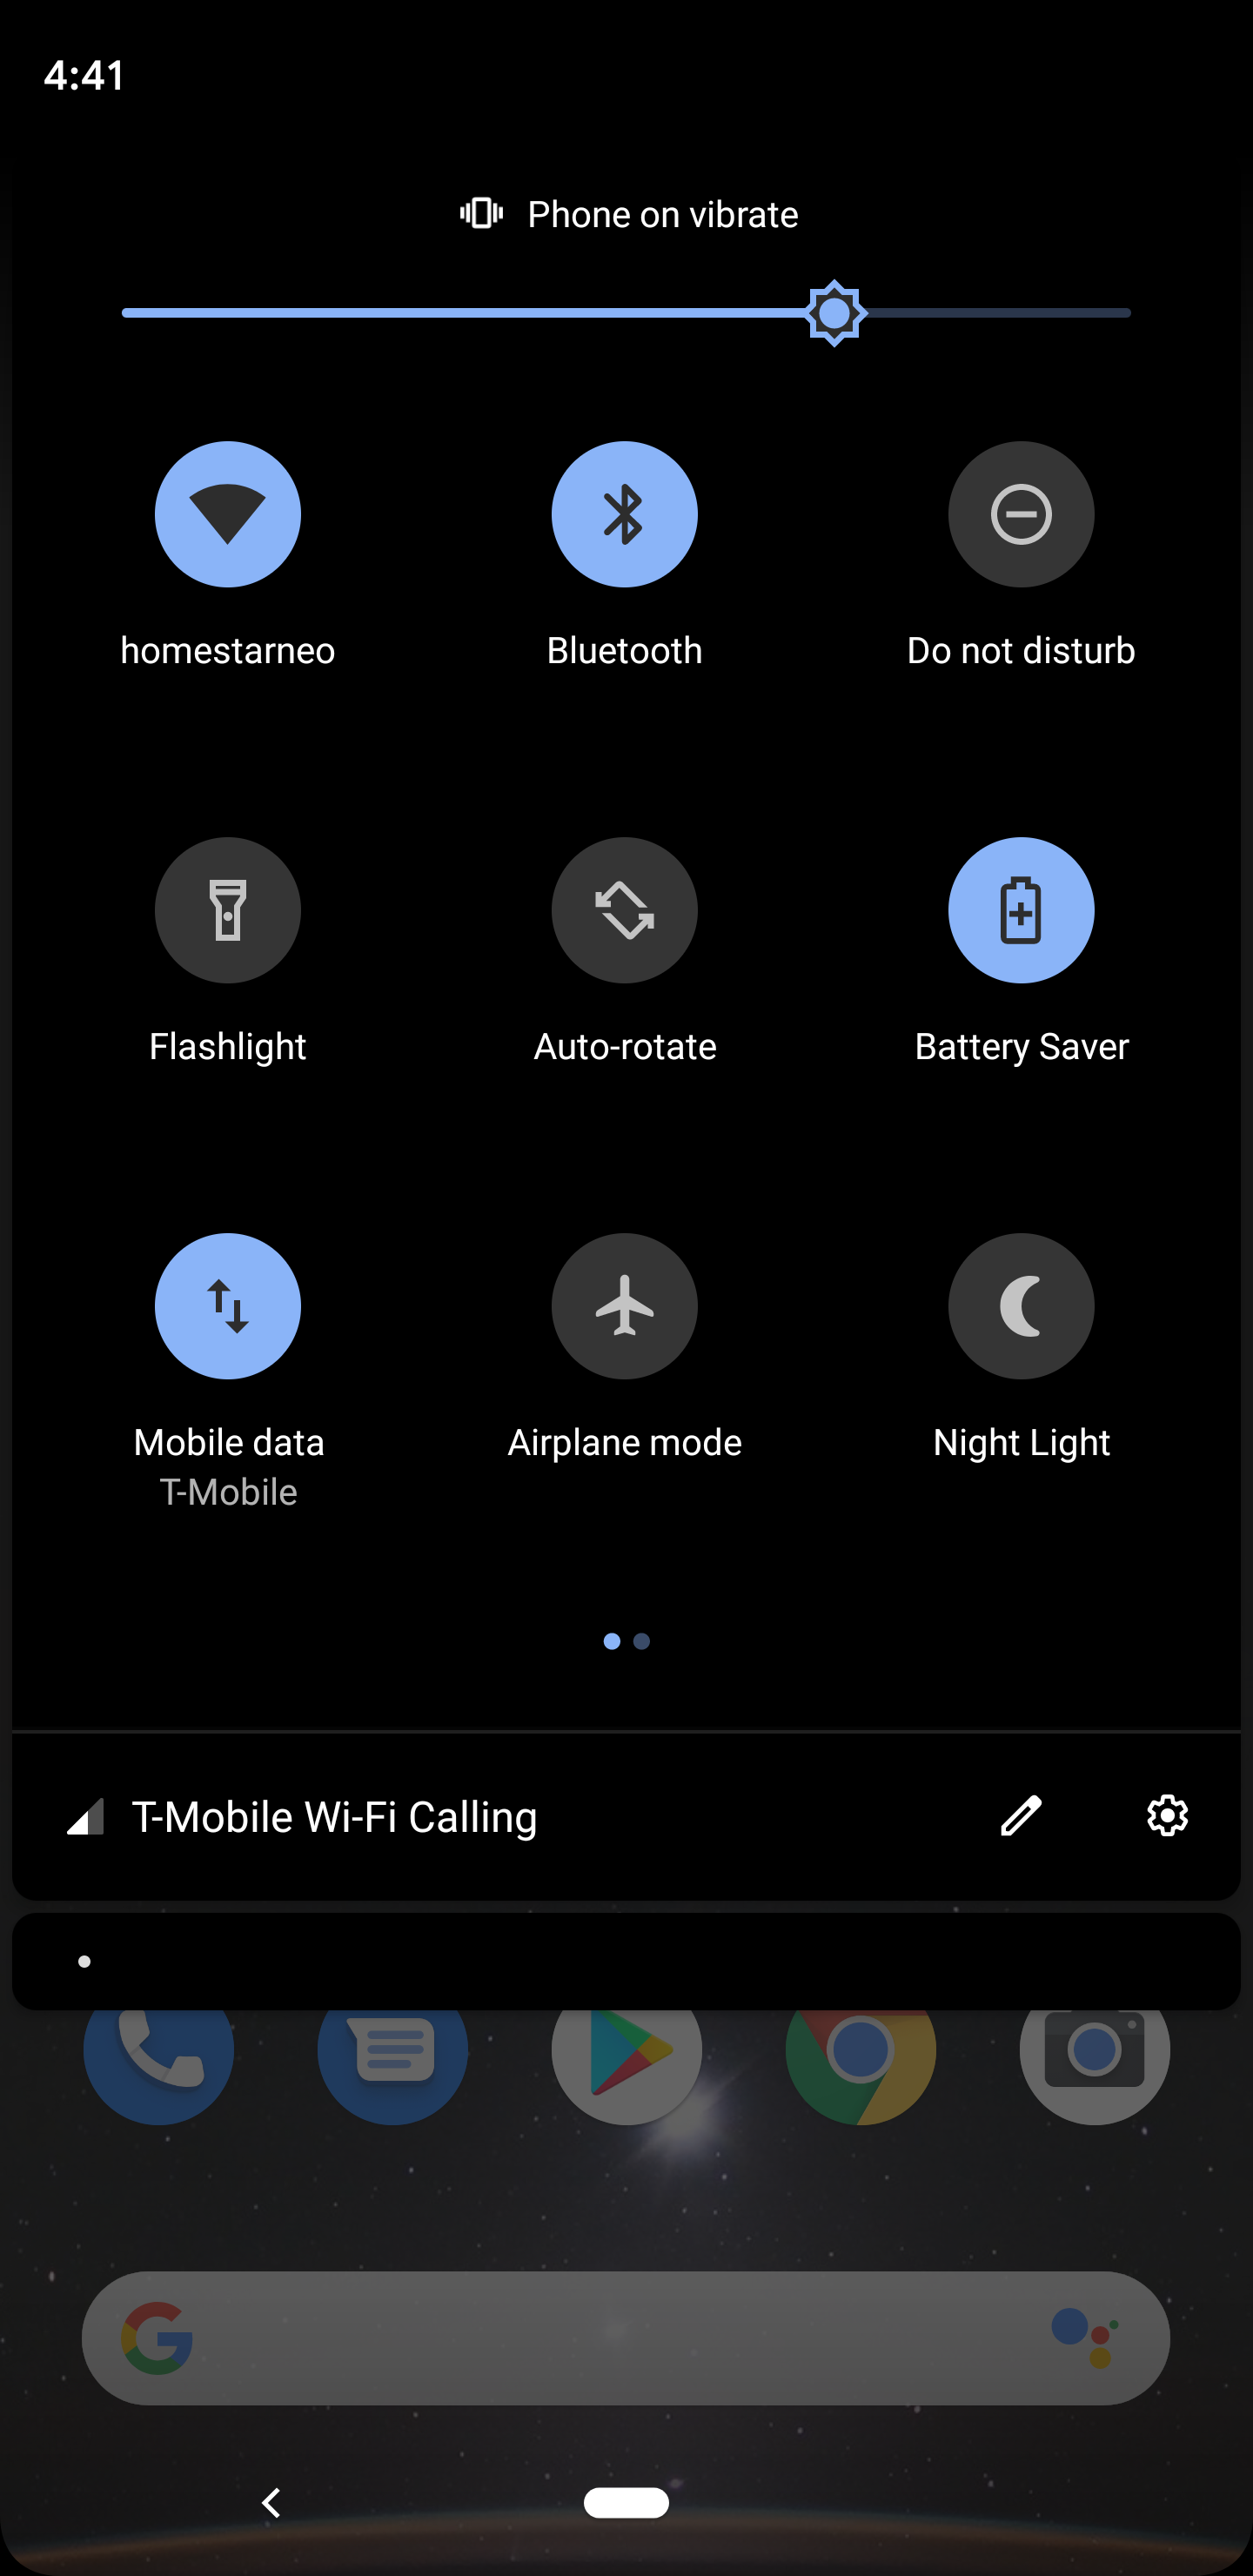 Android Q's dark theme must be picture-perfect at launch